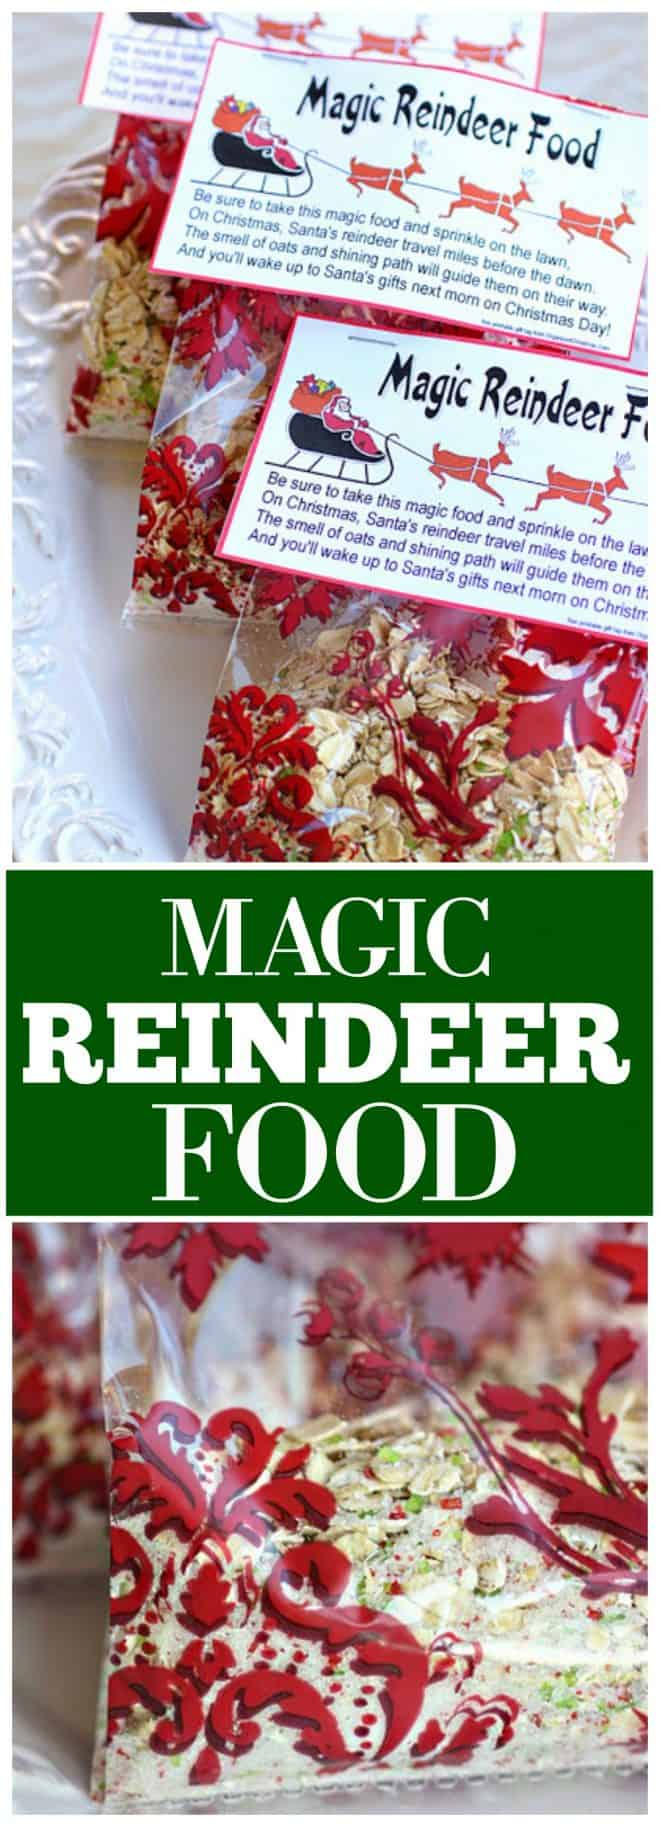 Magic Reindeer Food - made from oats, sprinkles, and glitter this magical reindeer food can be sprinkled on the lawn for the reindeer to eat. #magical #reindeer #food #magic #christmas #craft